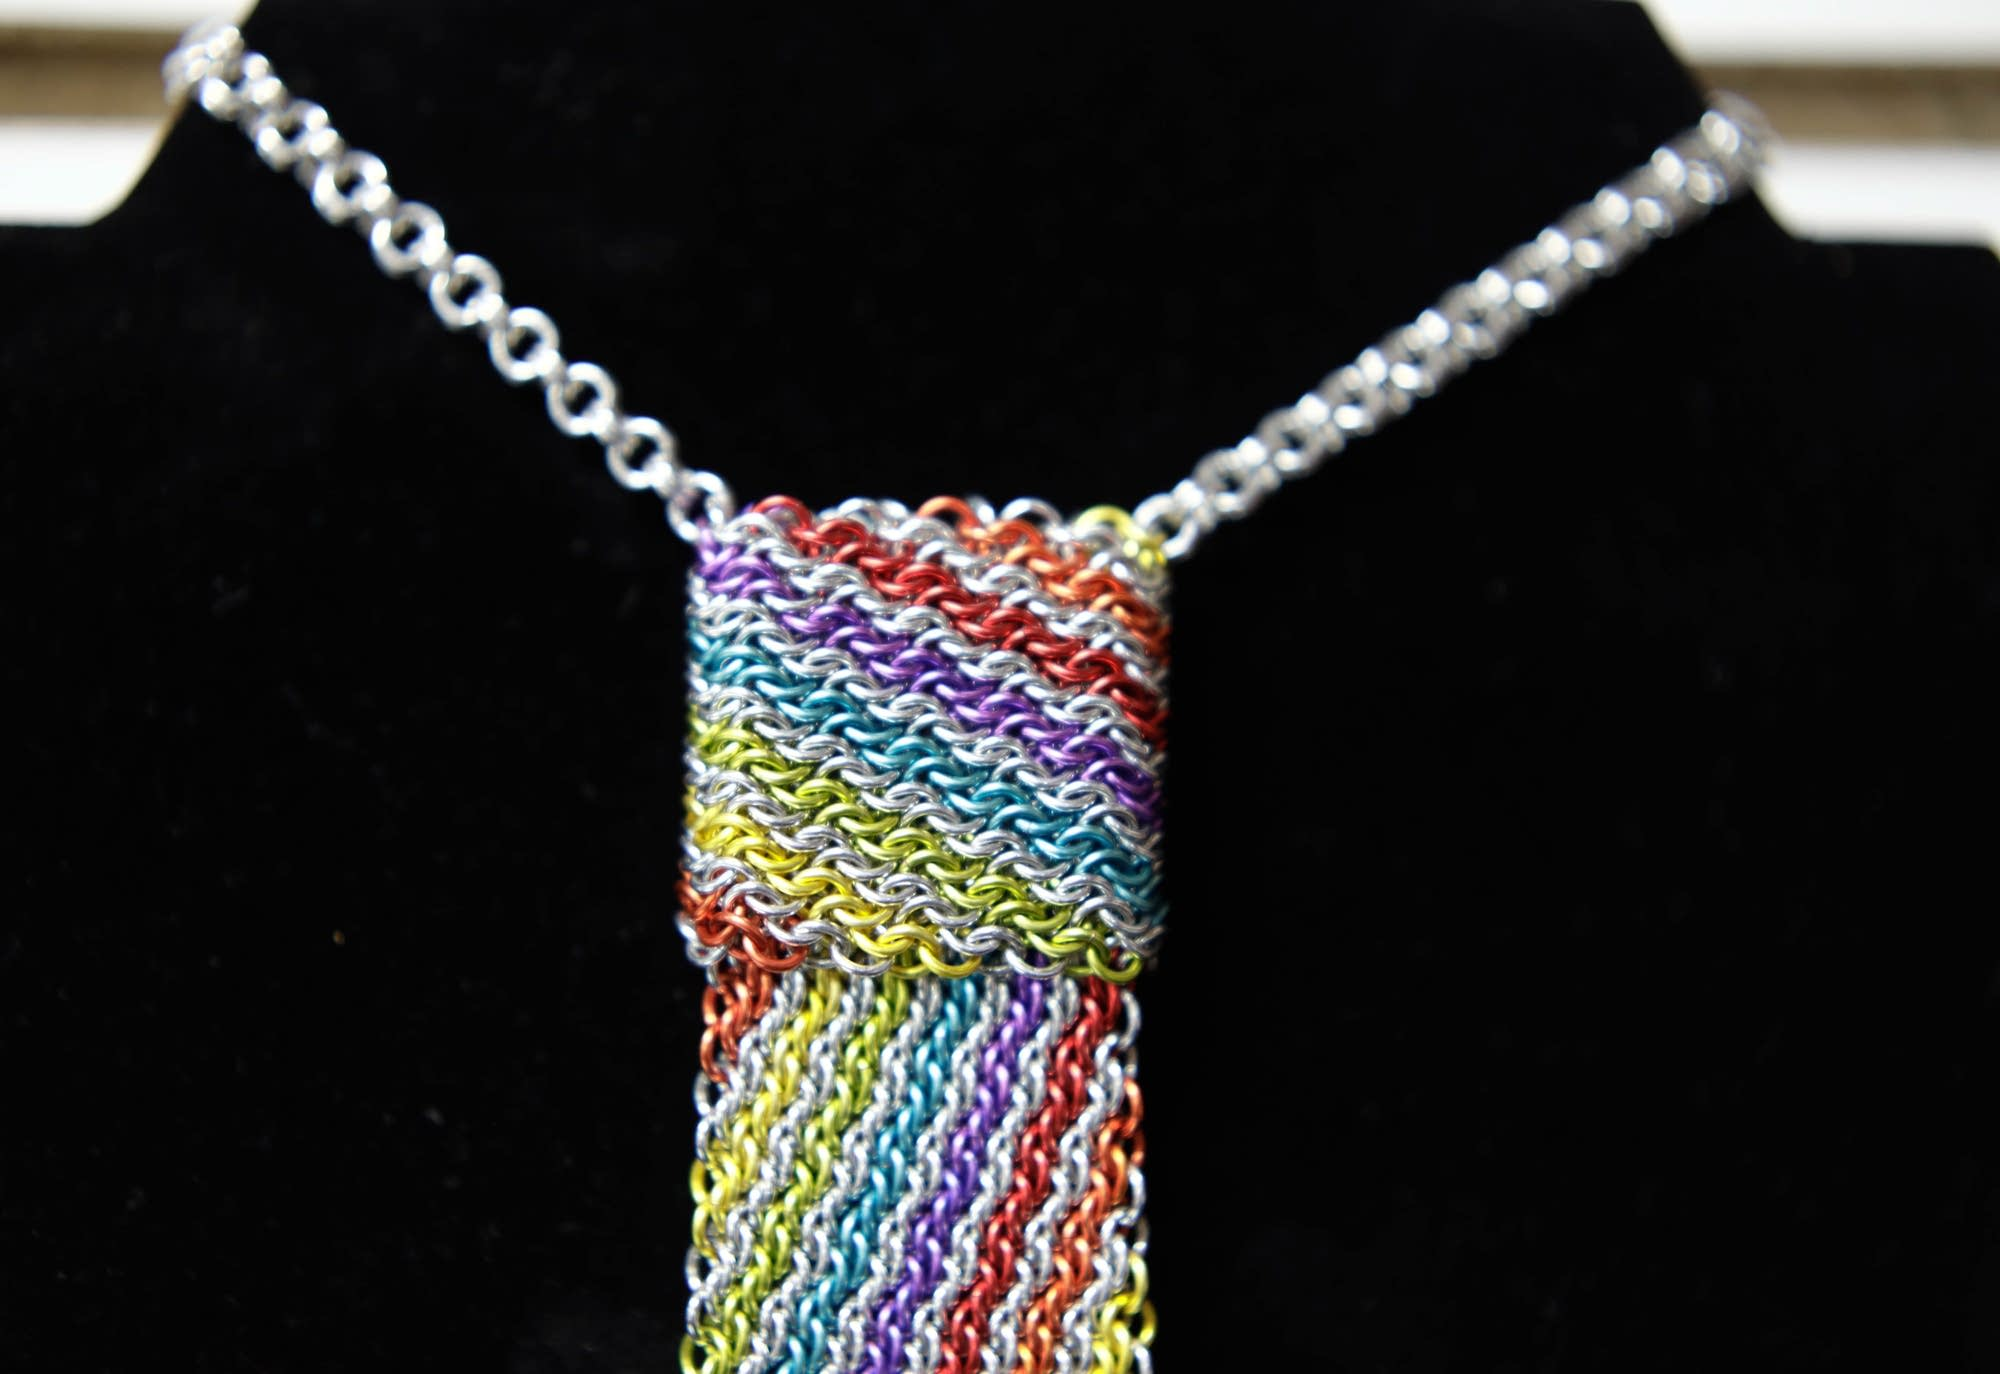 A colorful tie made with the chainmaille rings is displayed.